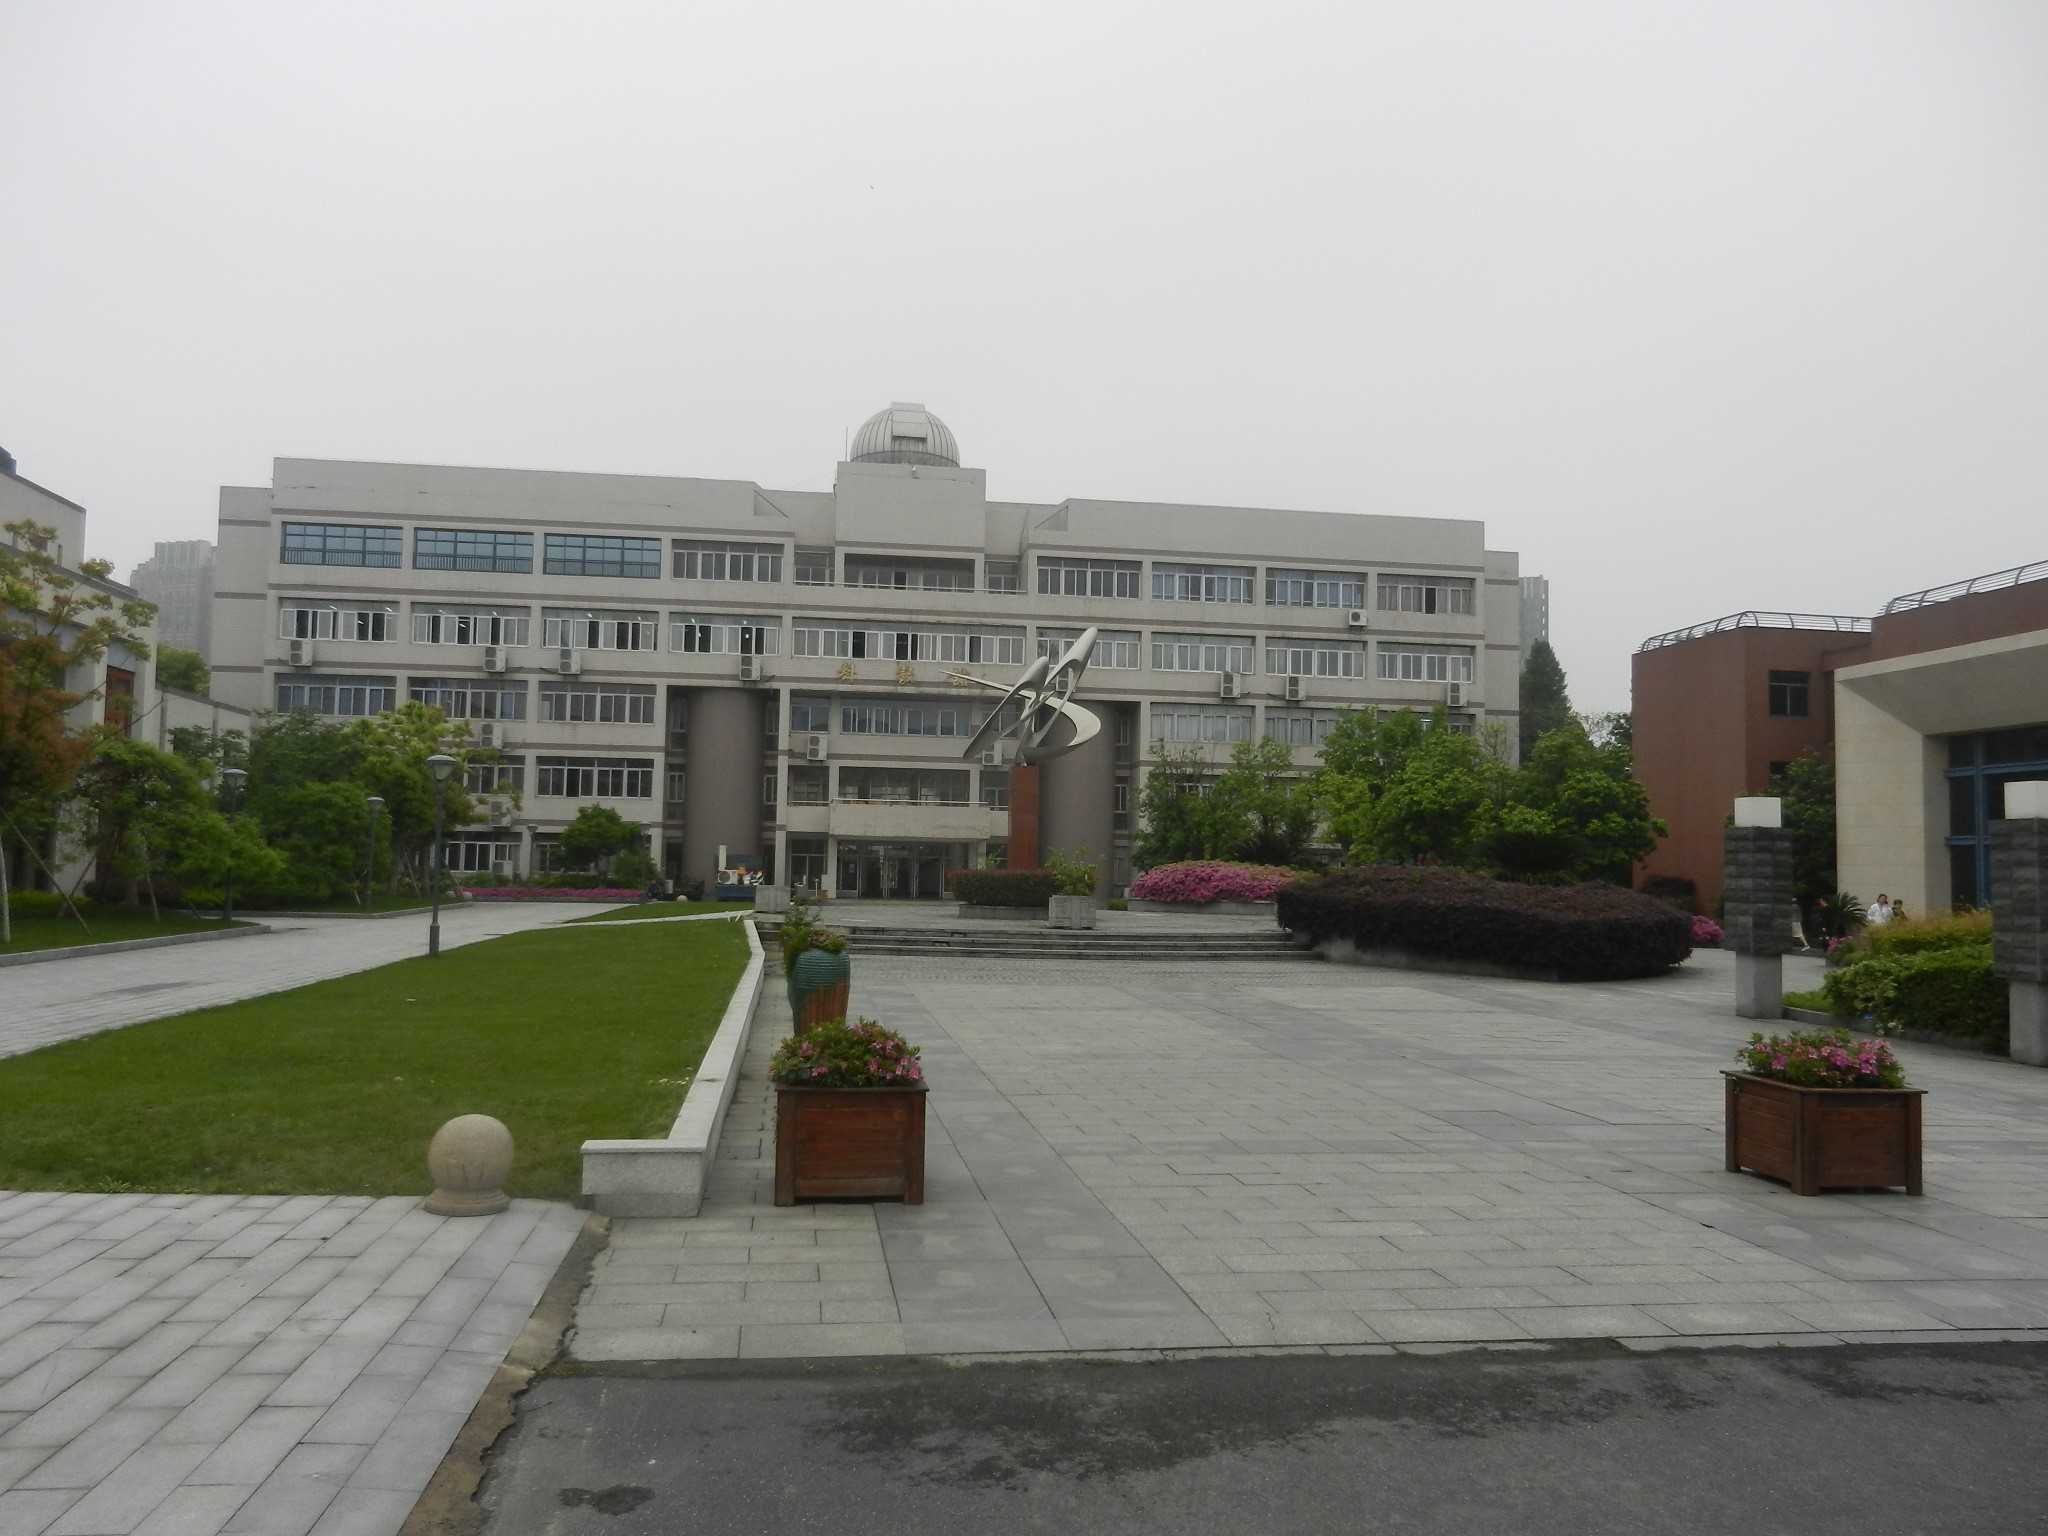 Hangzhou Yuhang Highschool